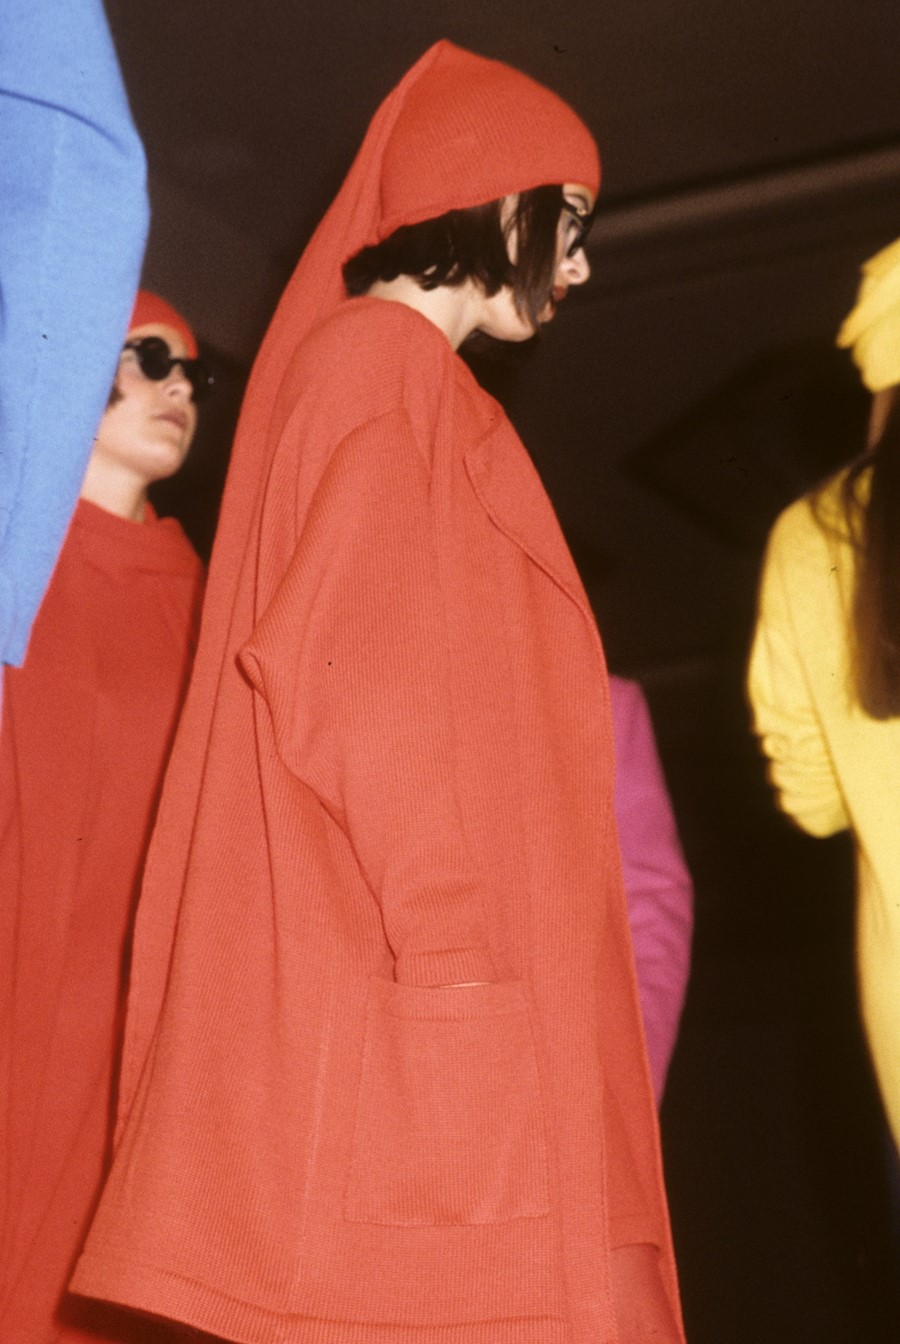 1984. Stephen Sprouse. Model wearing a red coat an